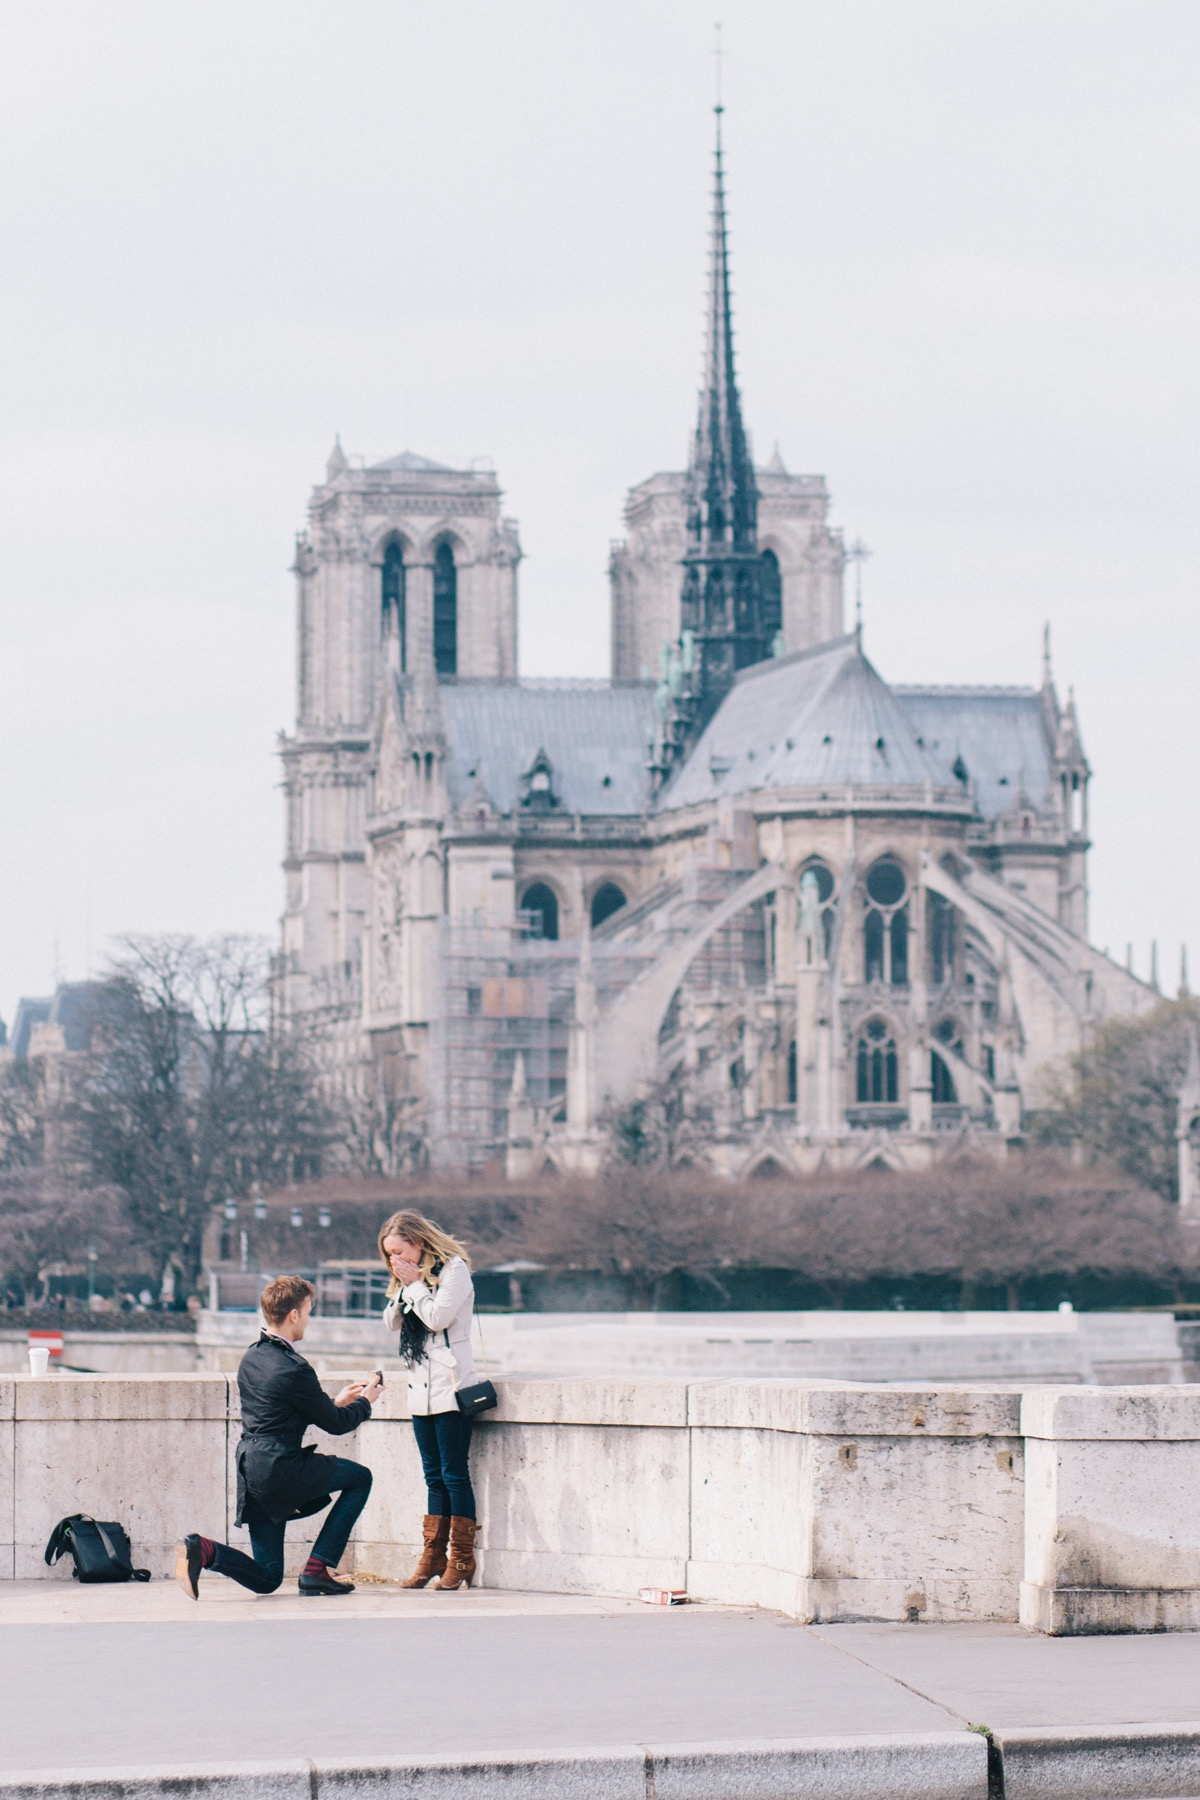 Flytographer:  Goncalo in Paris